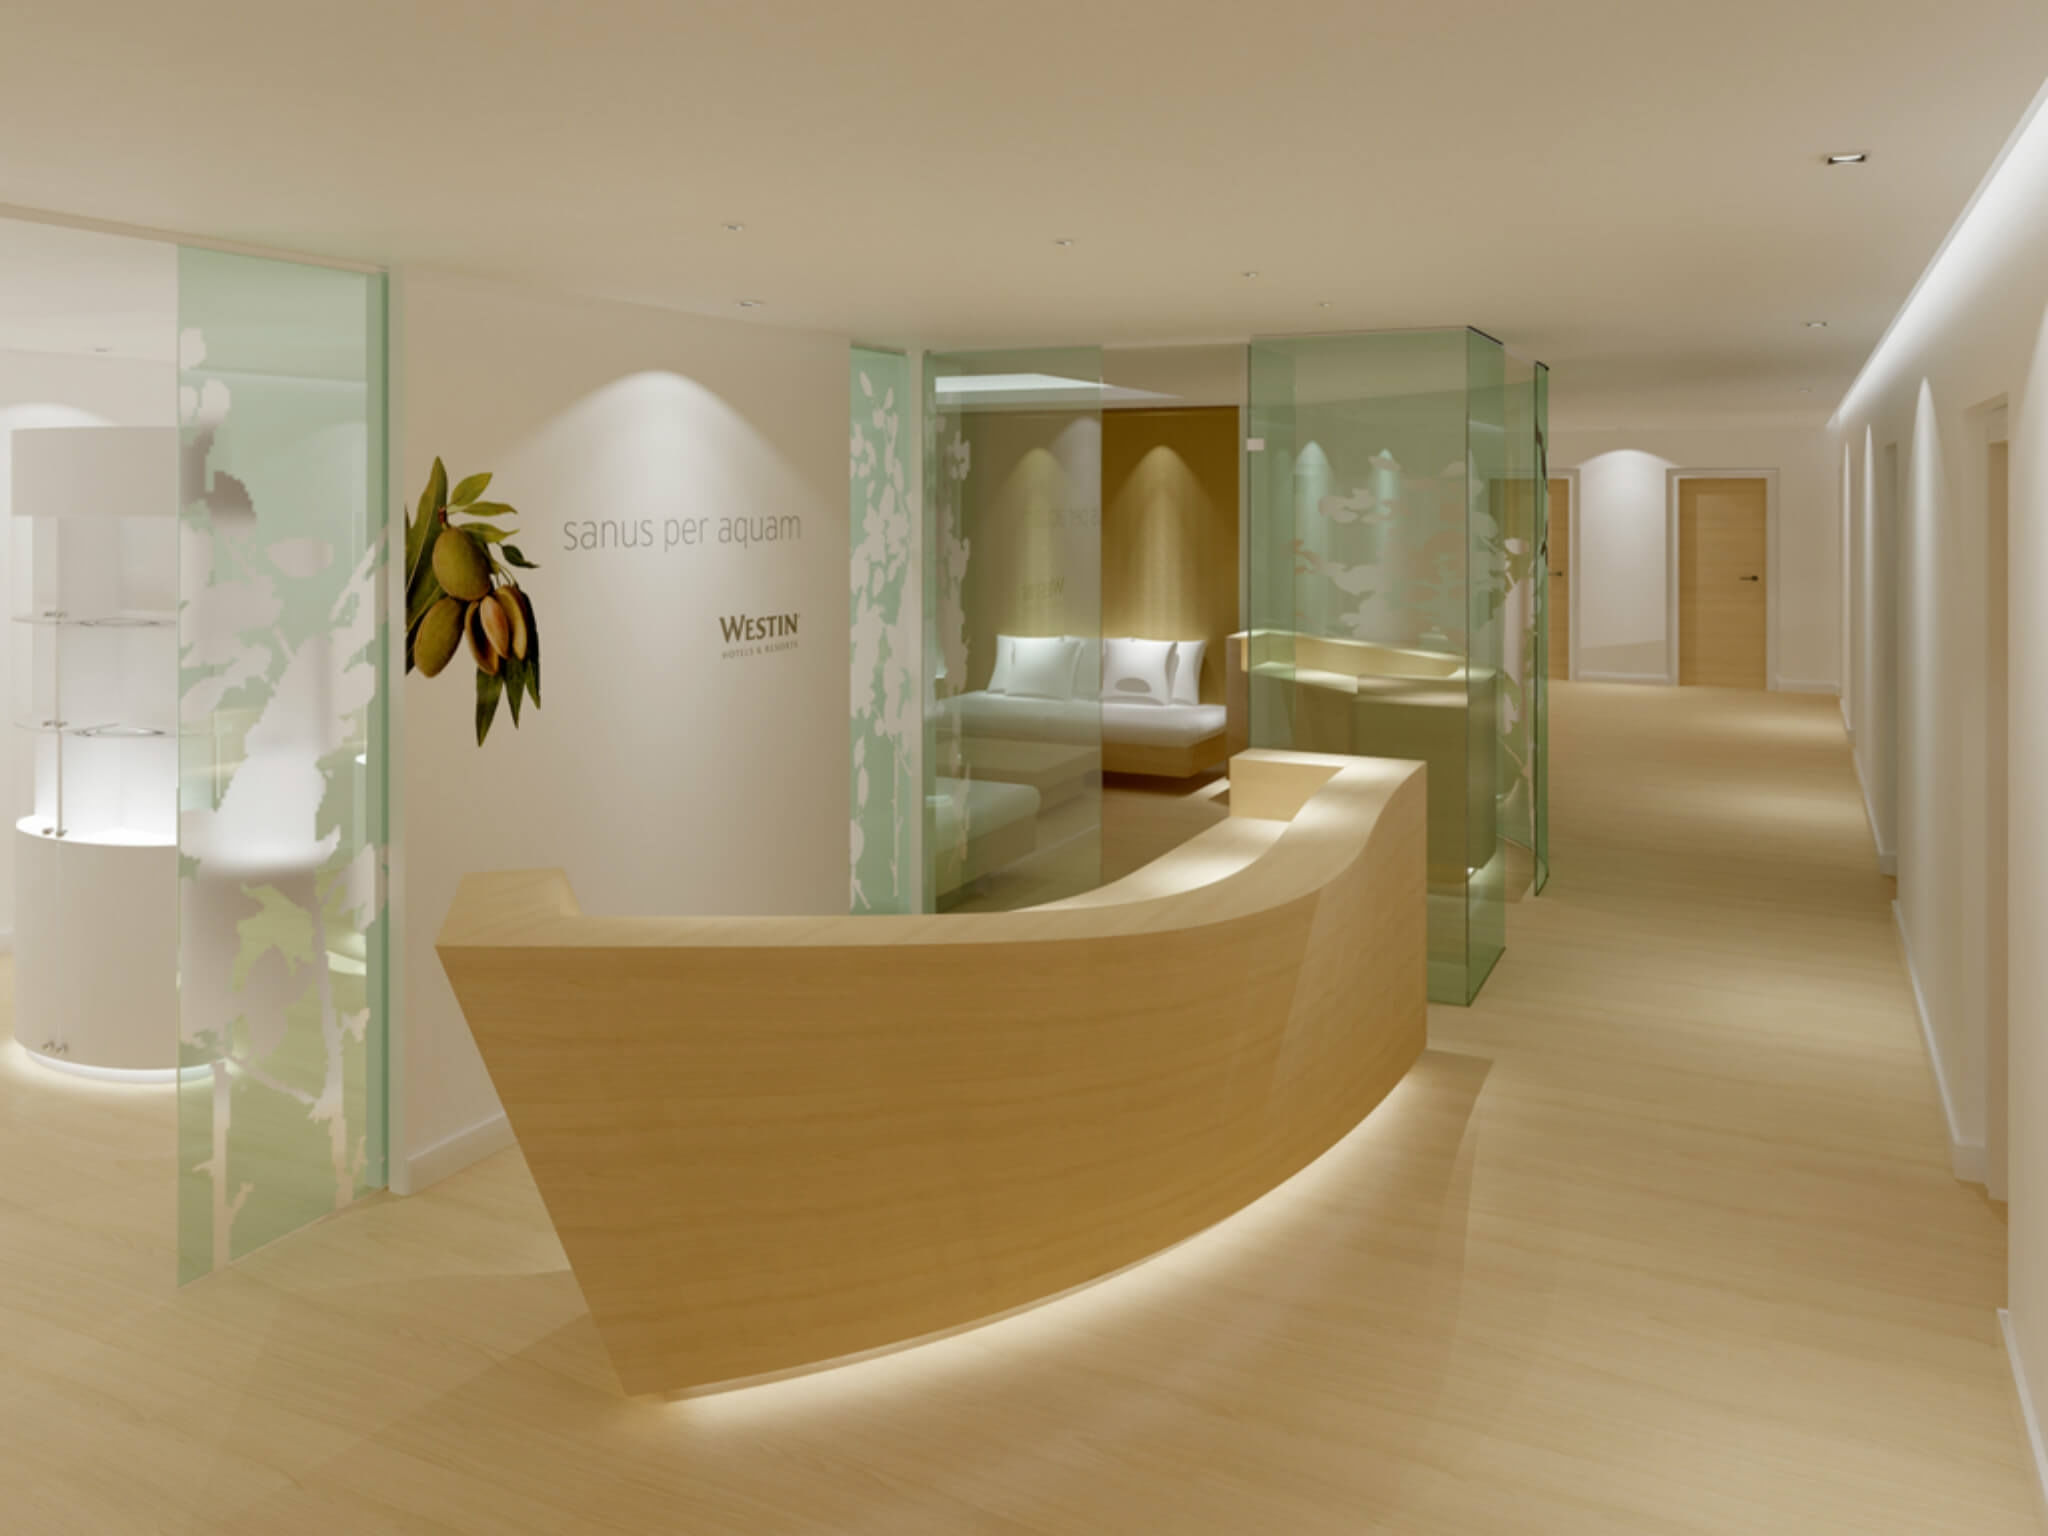 Westin Hotel Hamburg, in the Elbphilharmonie - Wellness area